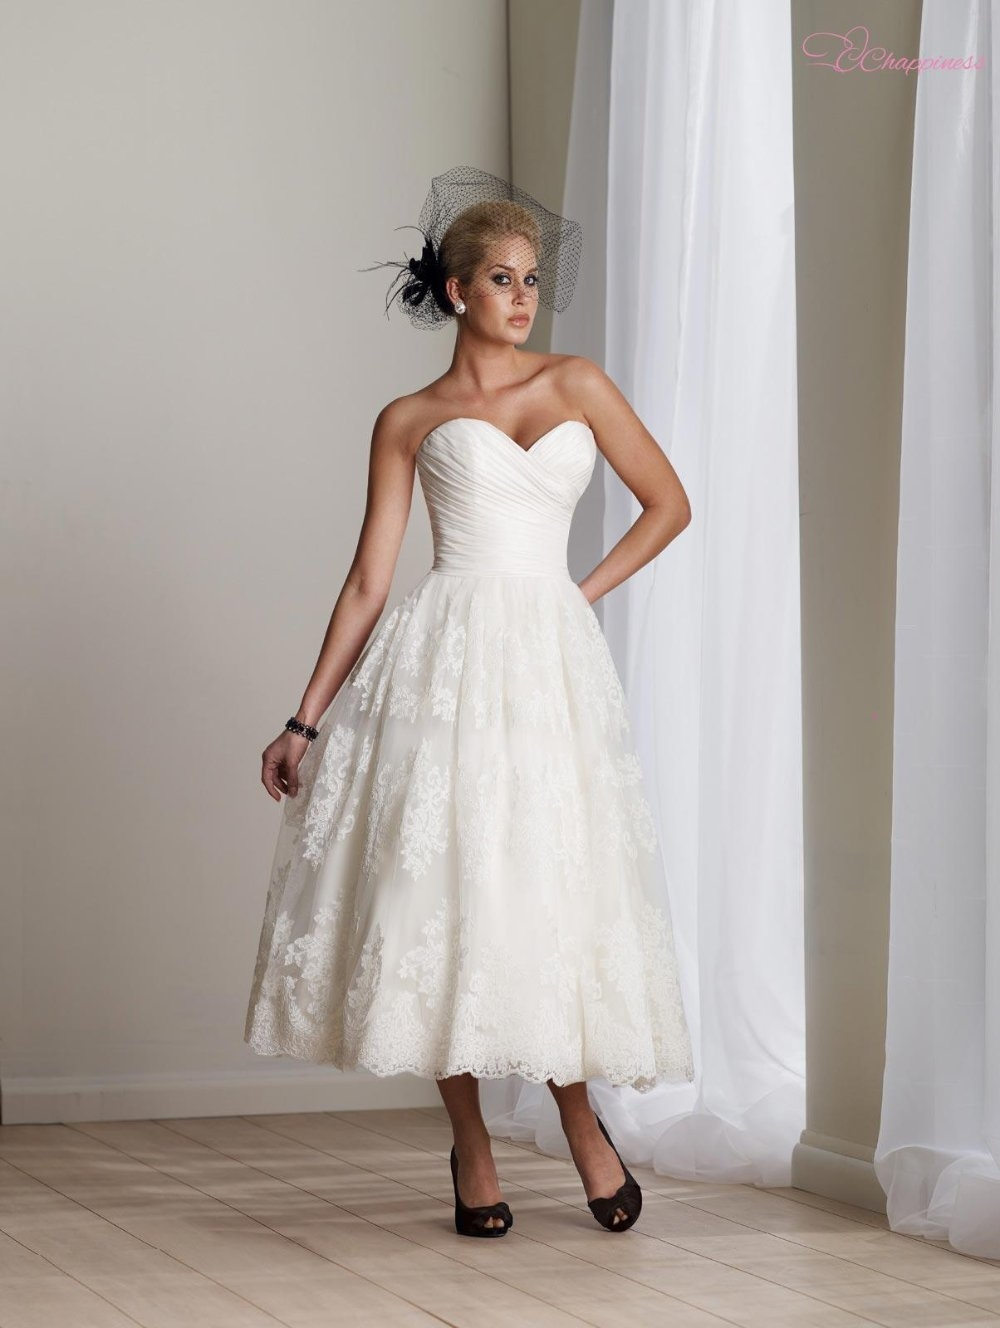 Short ivory strapless wedding dress pictures photos and for Ivory short wedding dress